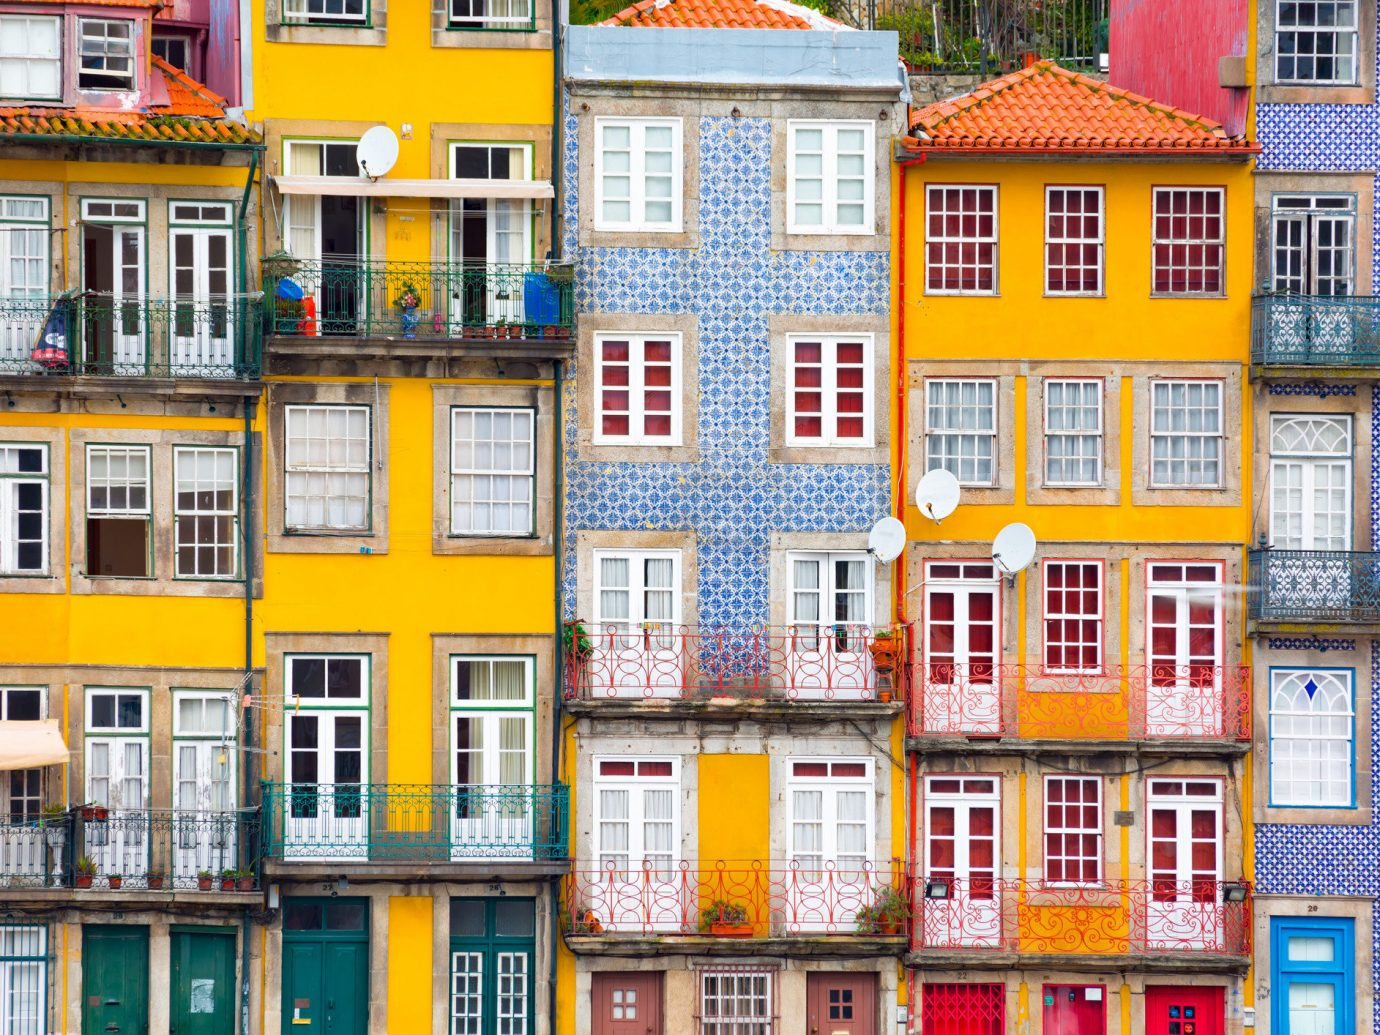 Travel Tips Trip Ideas building yellow color outdoor Town property house neighbourhood City urban area facade human settlement residential area Architecture condominium tower block home cityscape apartment